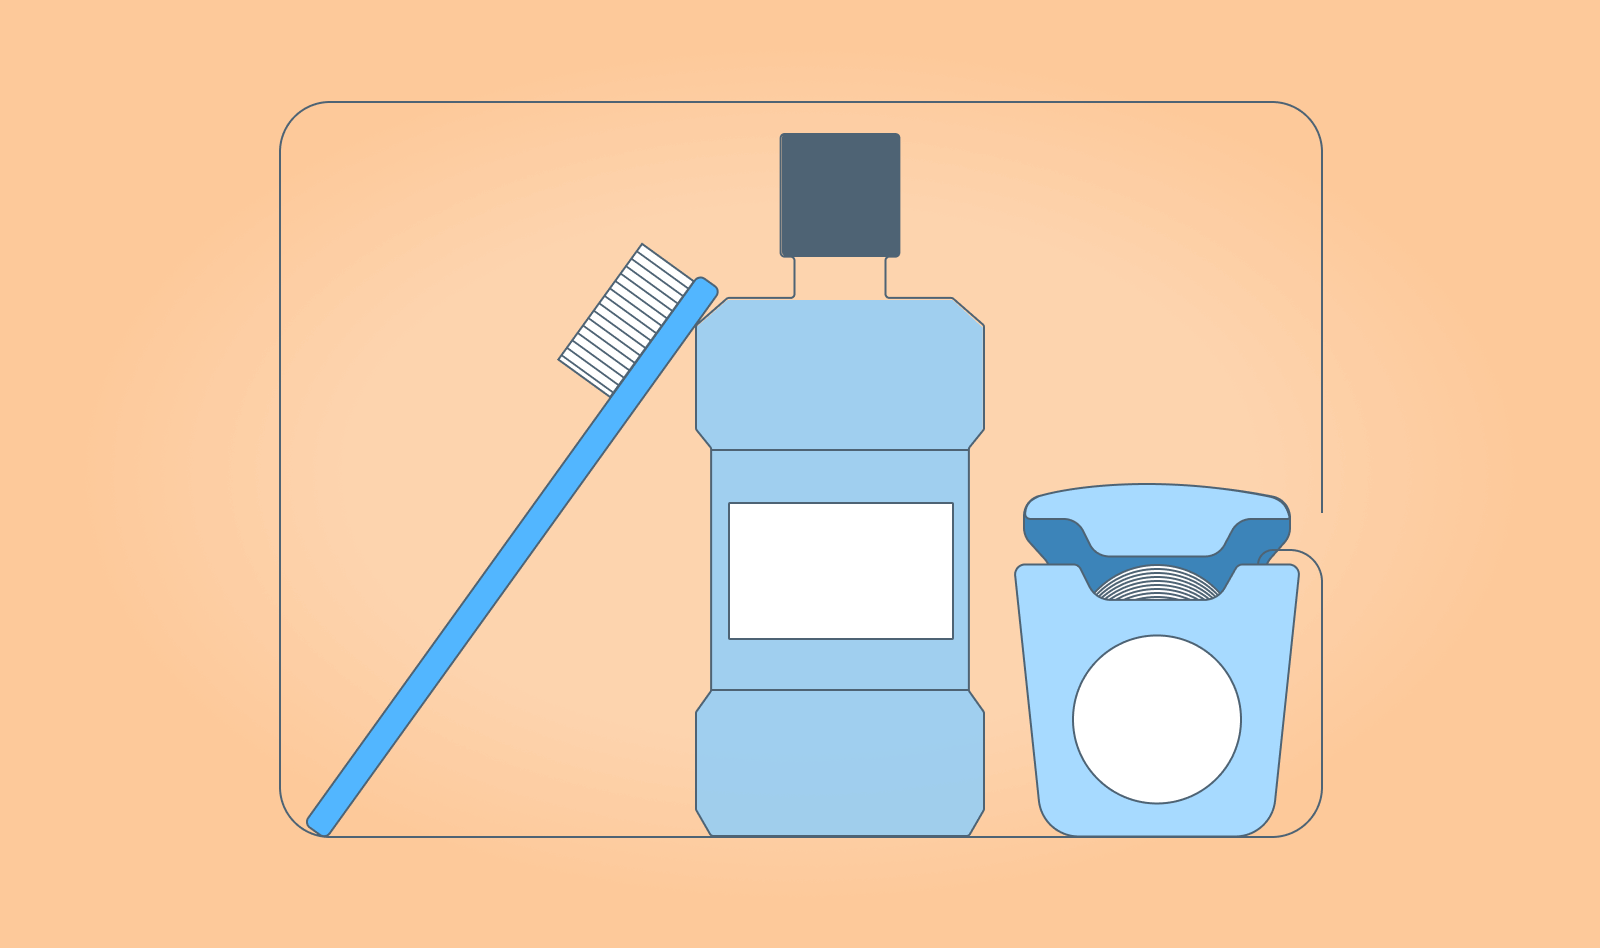 A toothbrush, mouthwash bottle and floss container with floss